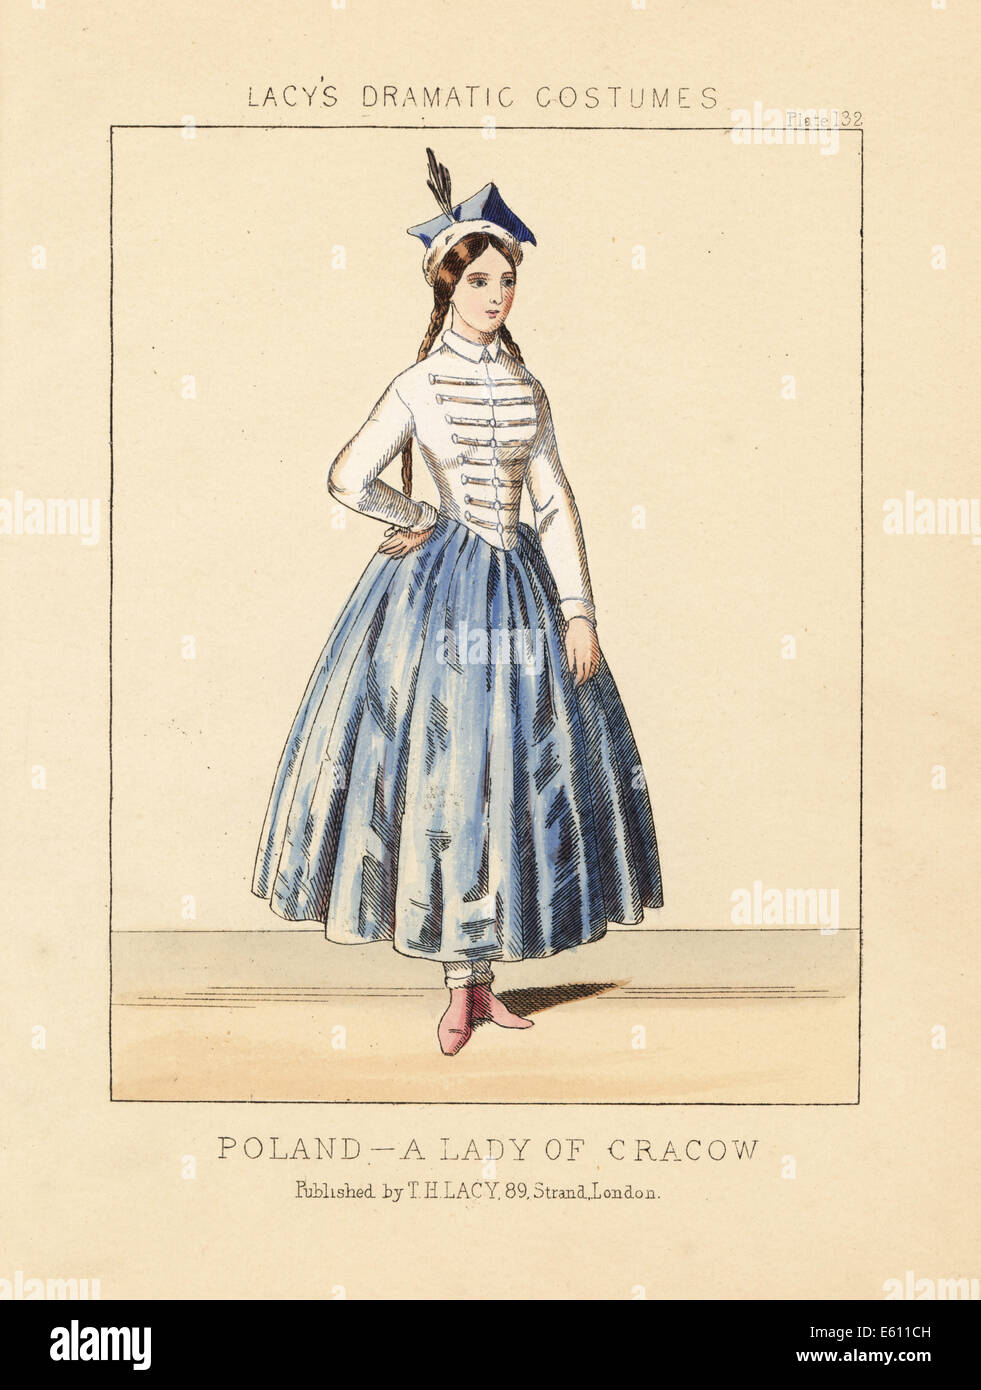 Costume of a lady of Cracow, Poland, 19th century. - Stock Image